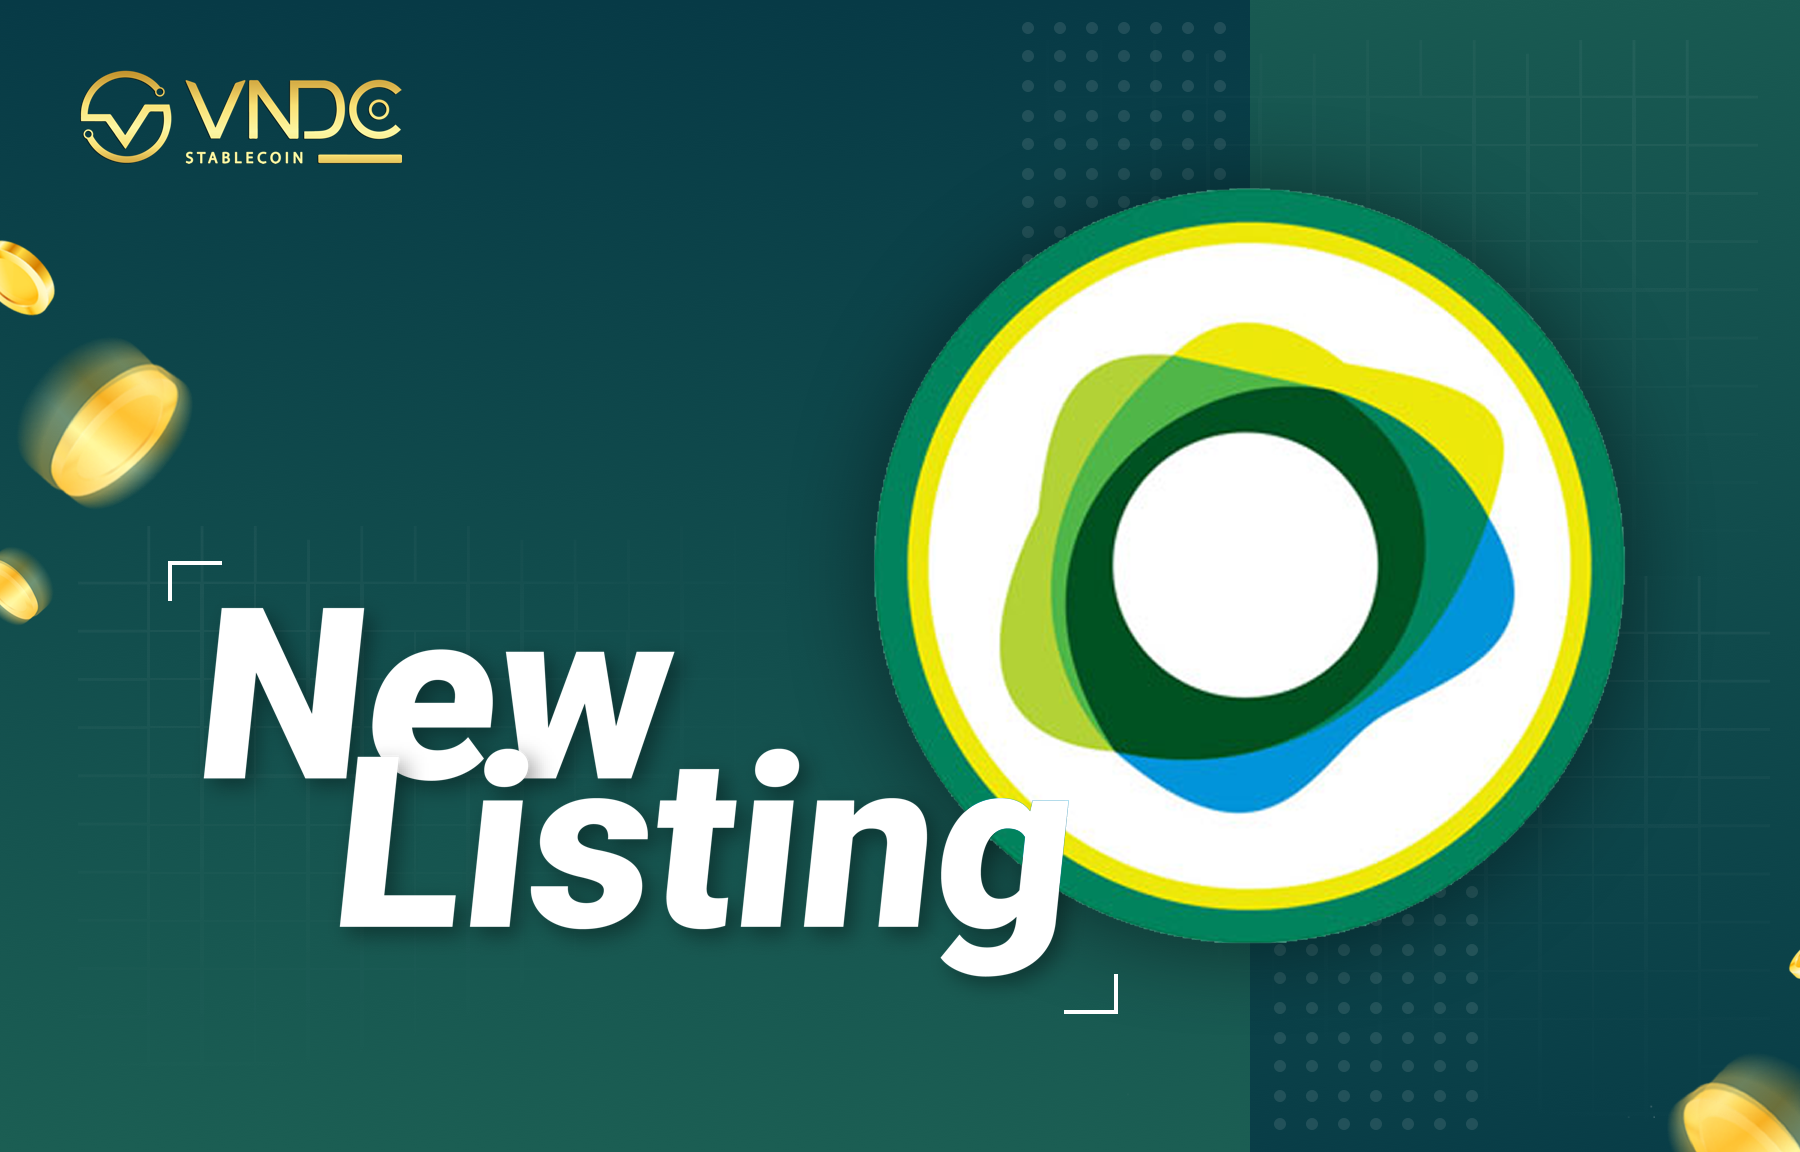 Paxos Standard (PAX) officially listed on VNDC Wallet App